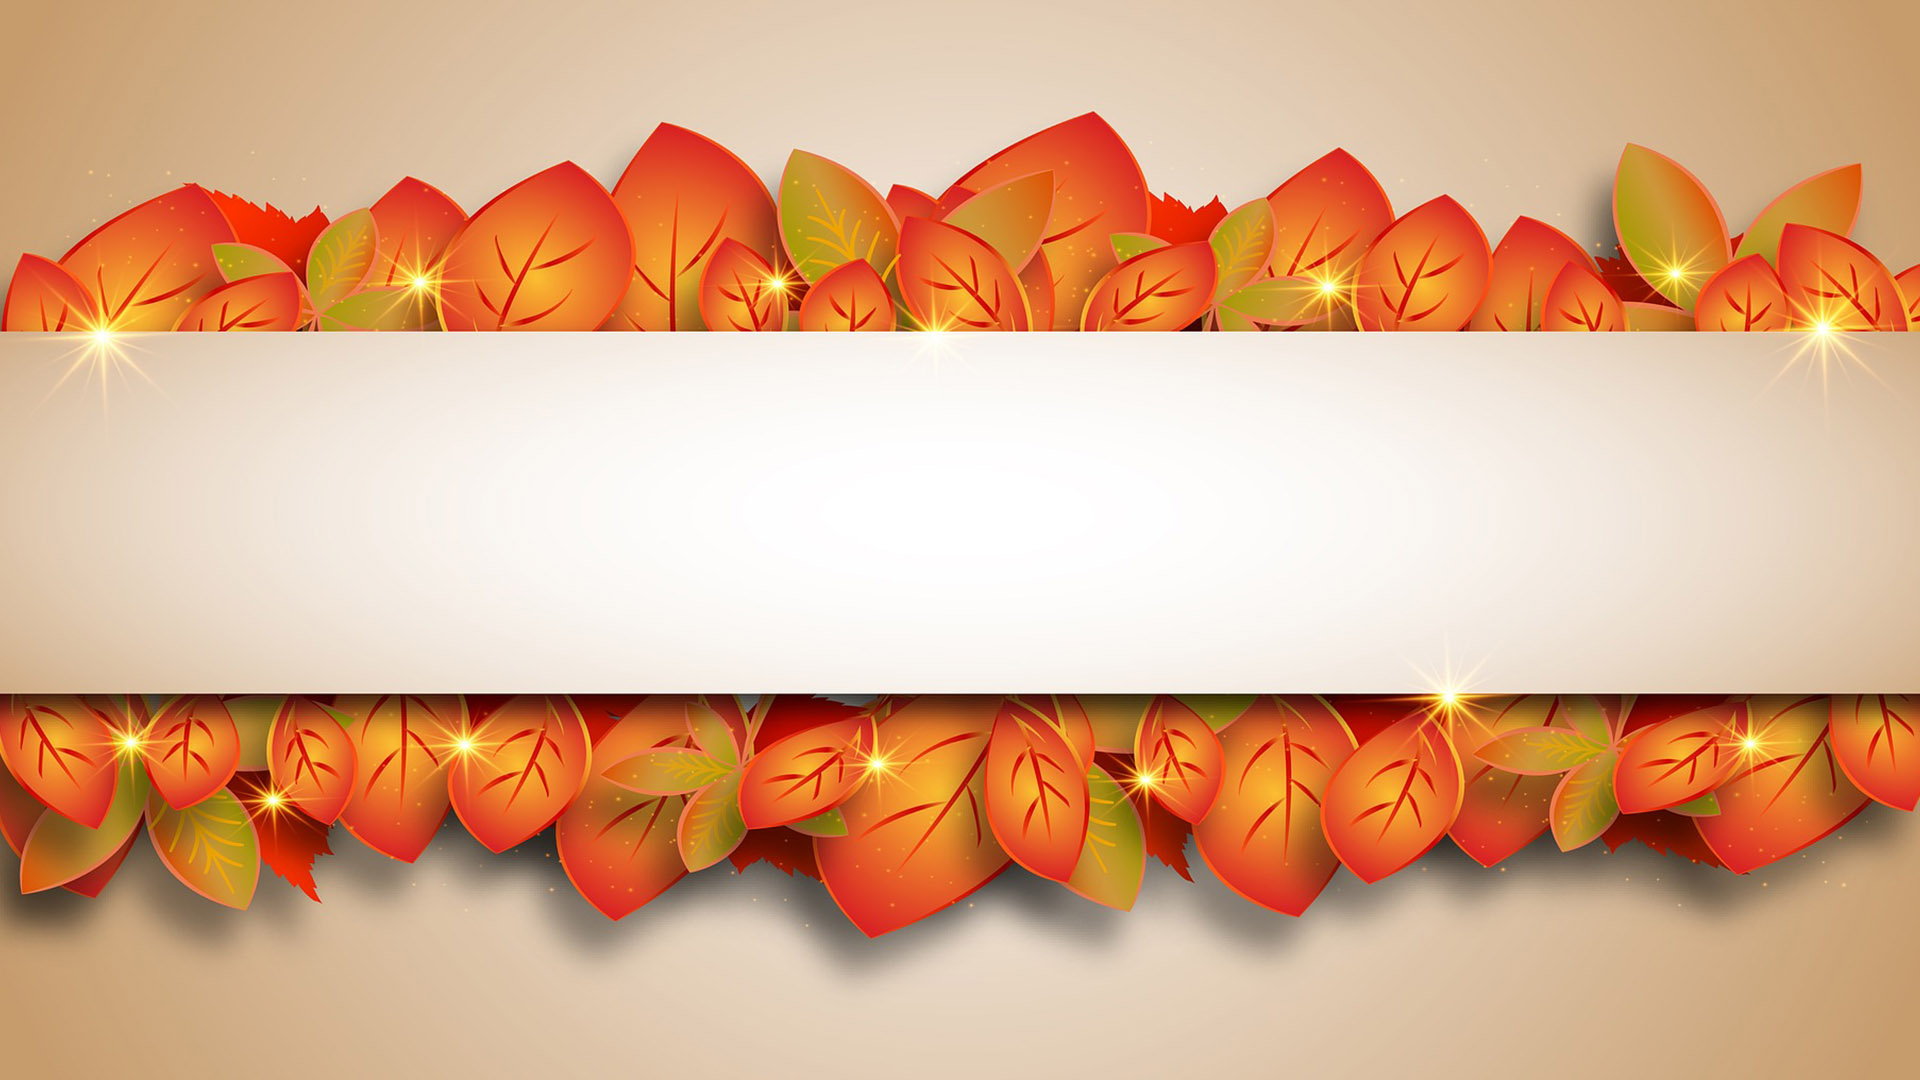 Fall Graphic Message for Digital Signage Communications